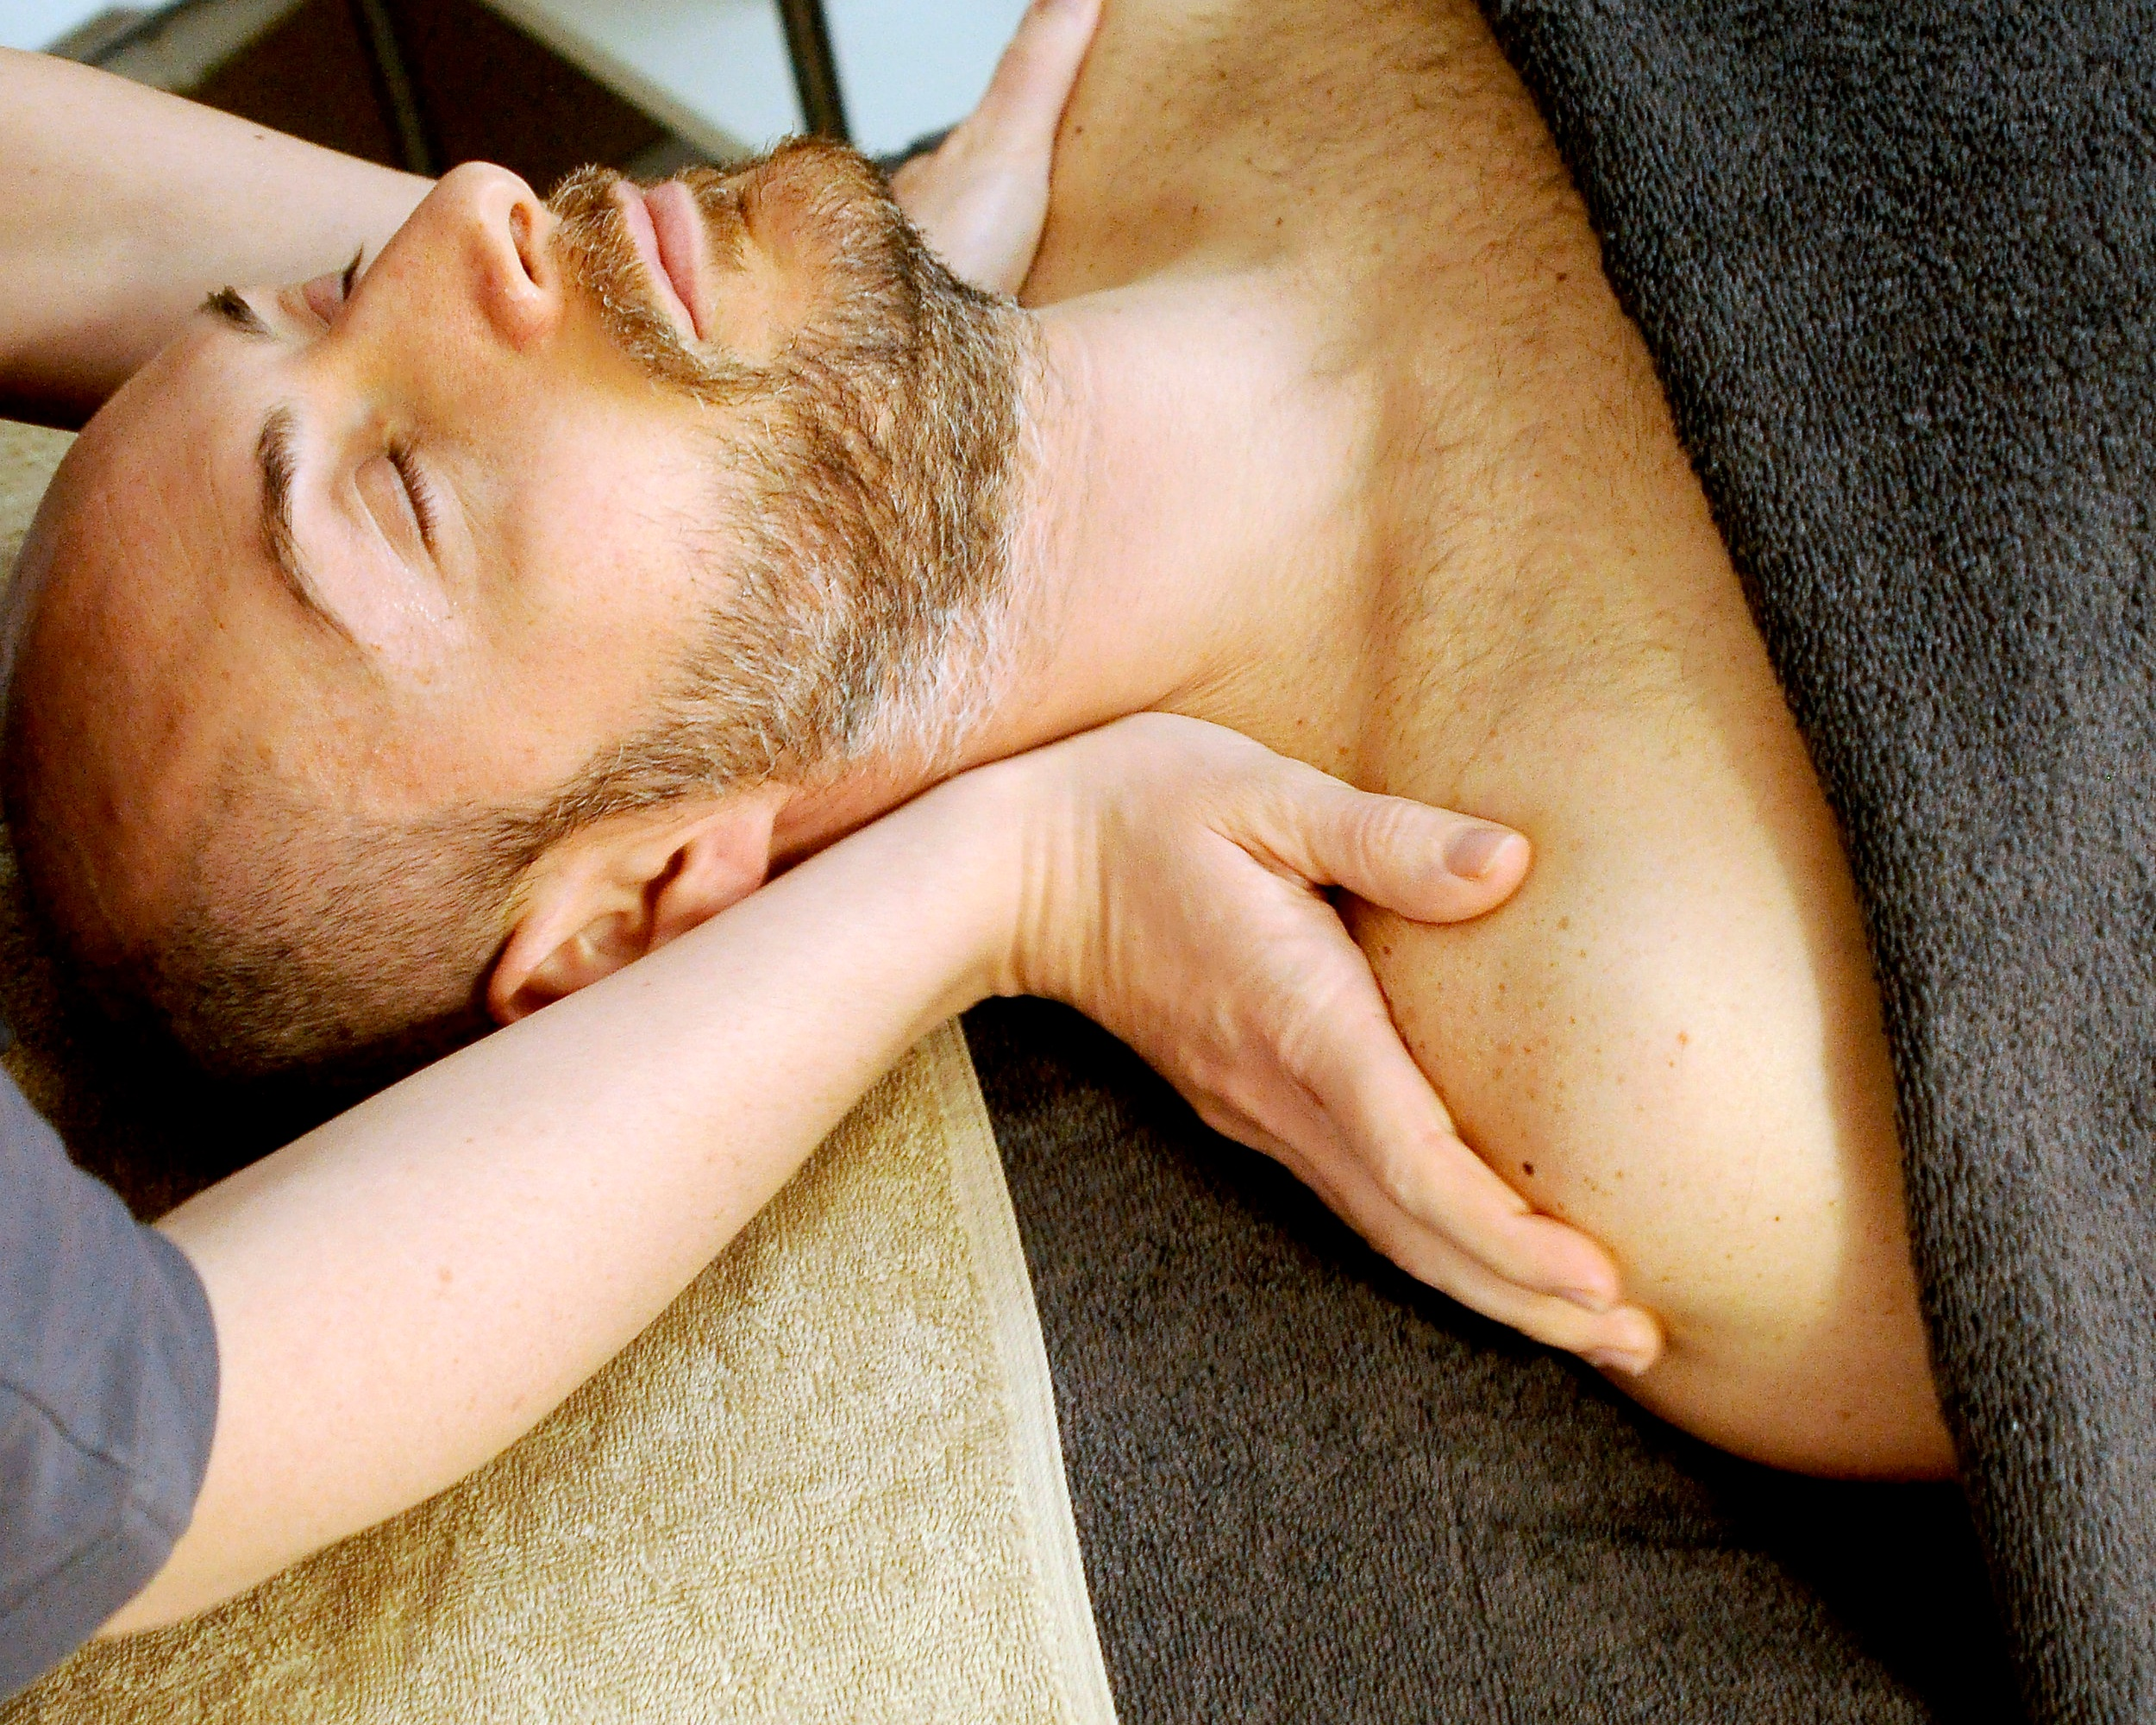 FASCIAL STRETCH THERAPY  Fascial Stretch Therapy is an assisted stretching system used to relieve tight joints and muscles, decrease or eliminate painful movement, and create lasting changes in your mobility. Clients will lay on the treatment table and be stretched for 30 - or 60 minutes at a time. Similar to a massage but with stretching!